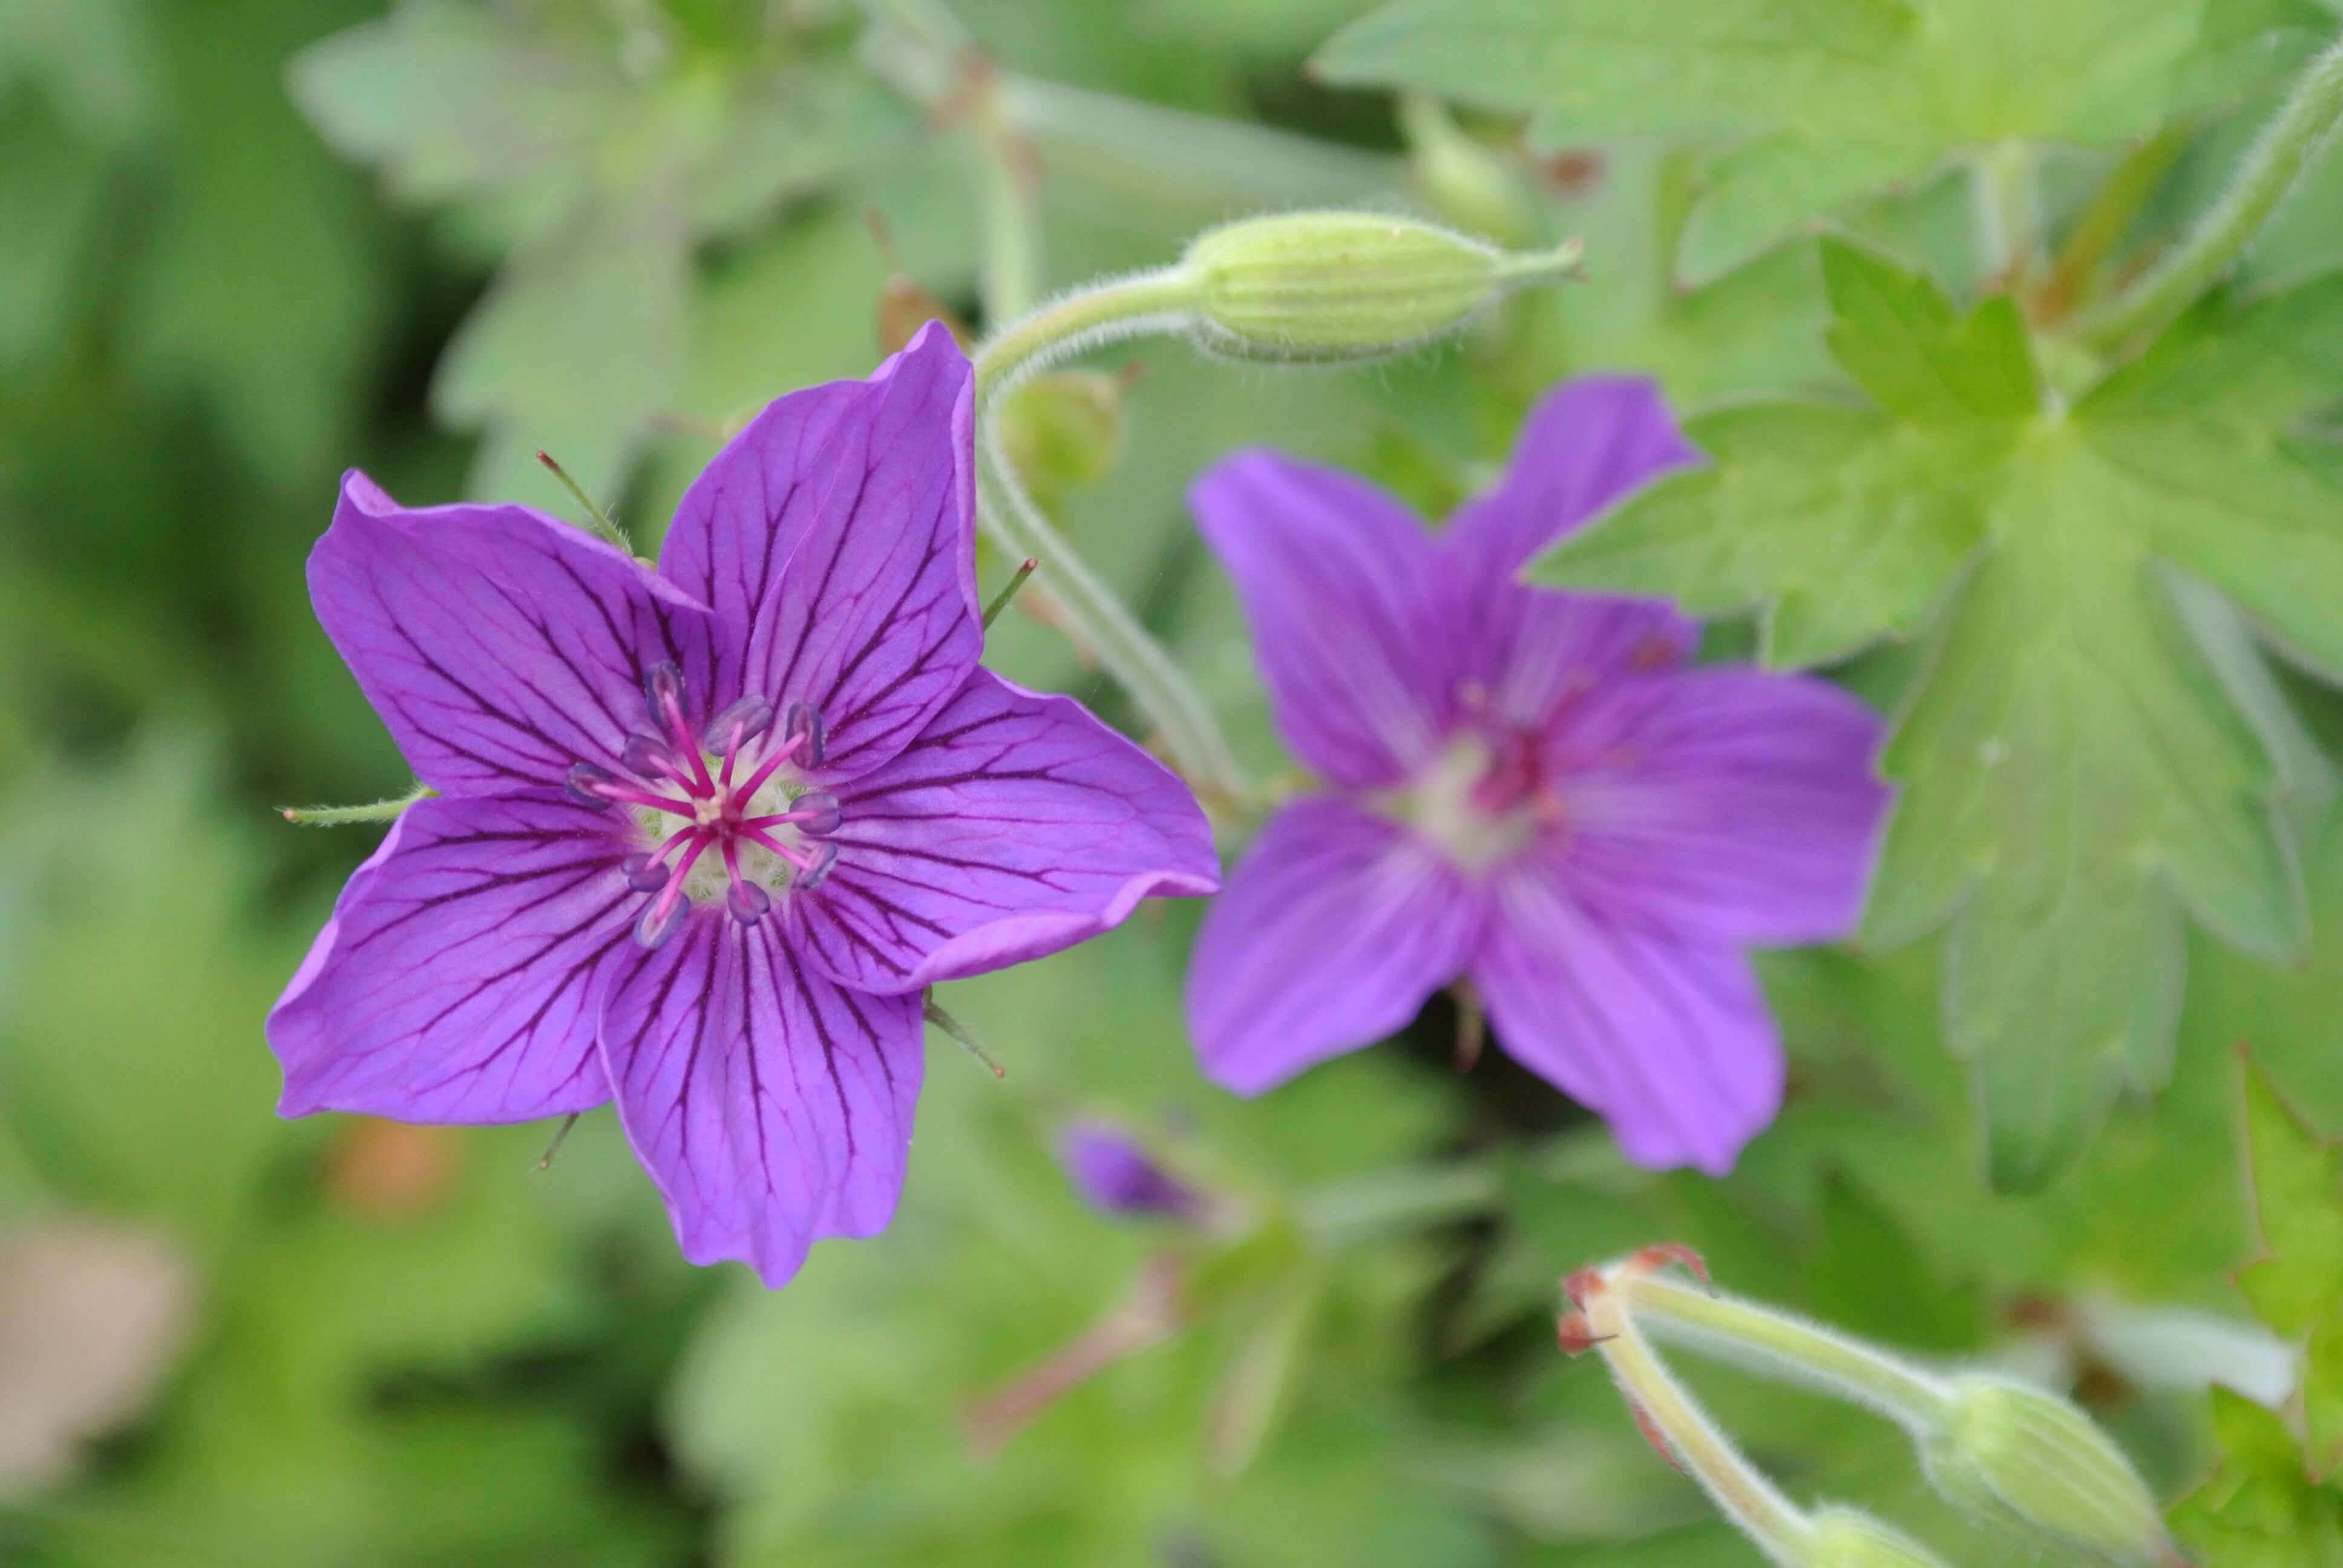 Best quality natural essential oils including Geranium - Cranesbills, Geranium Oil, Base Geranium AA and other fragrance & perfume oils at the most discount rates by BMV Fragrances in UP, India.